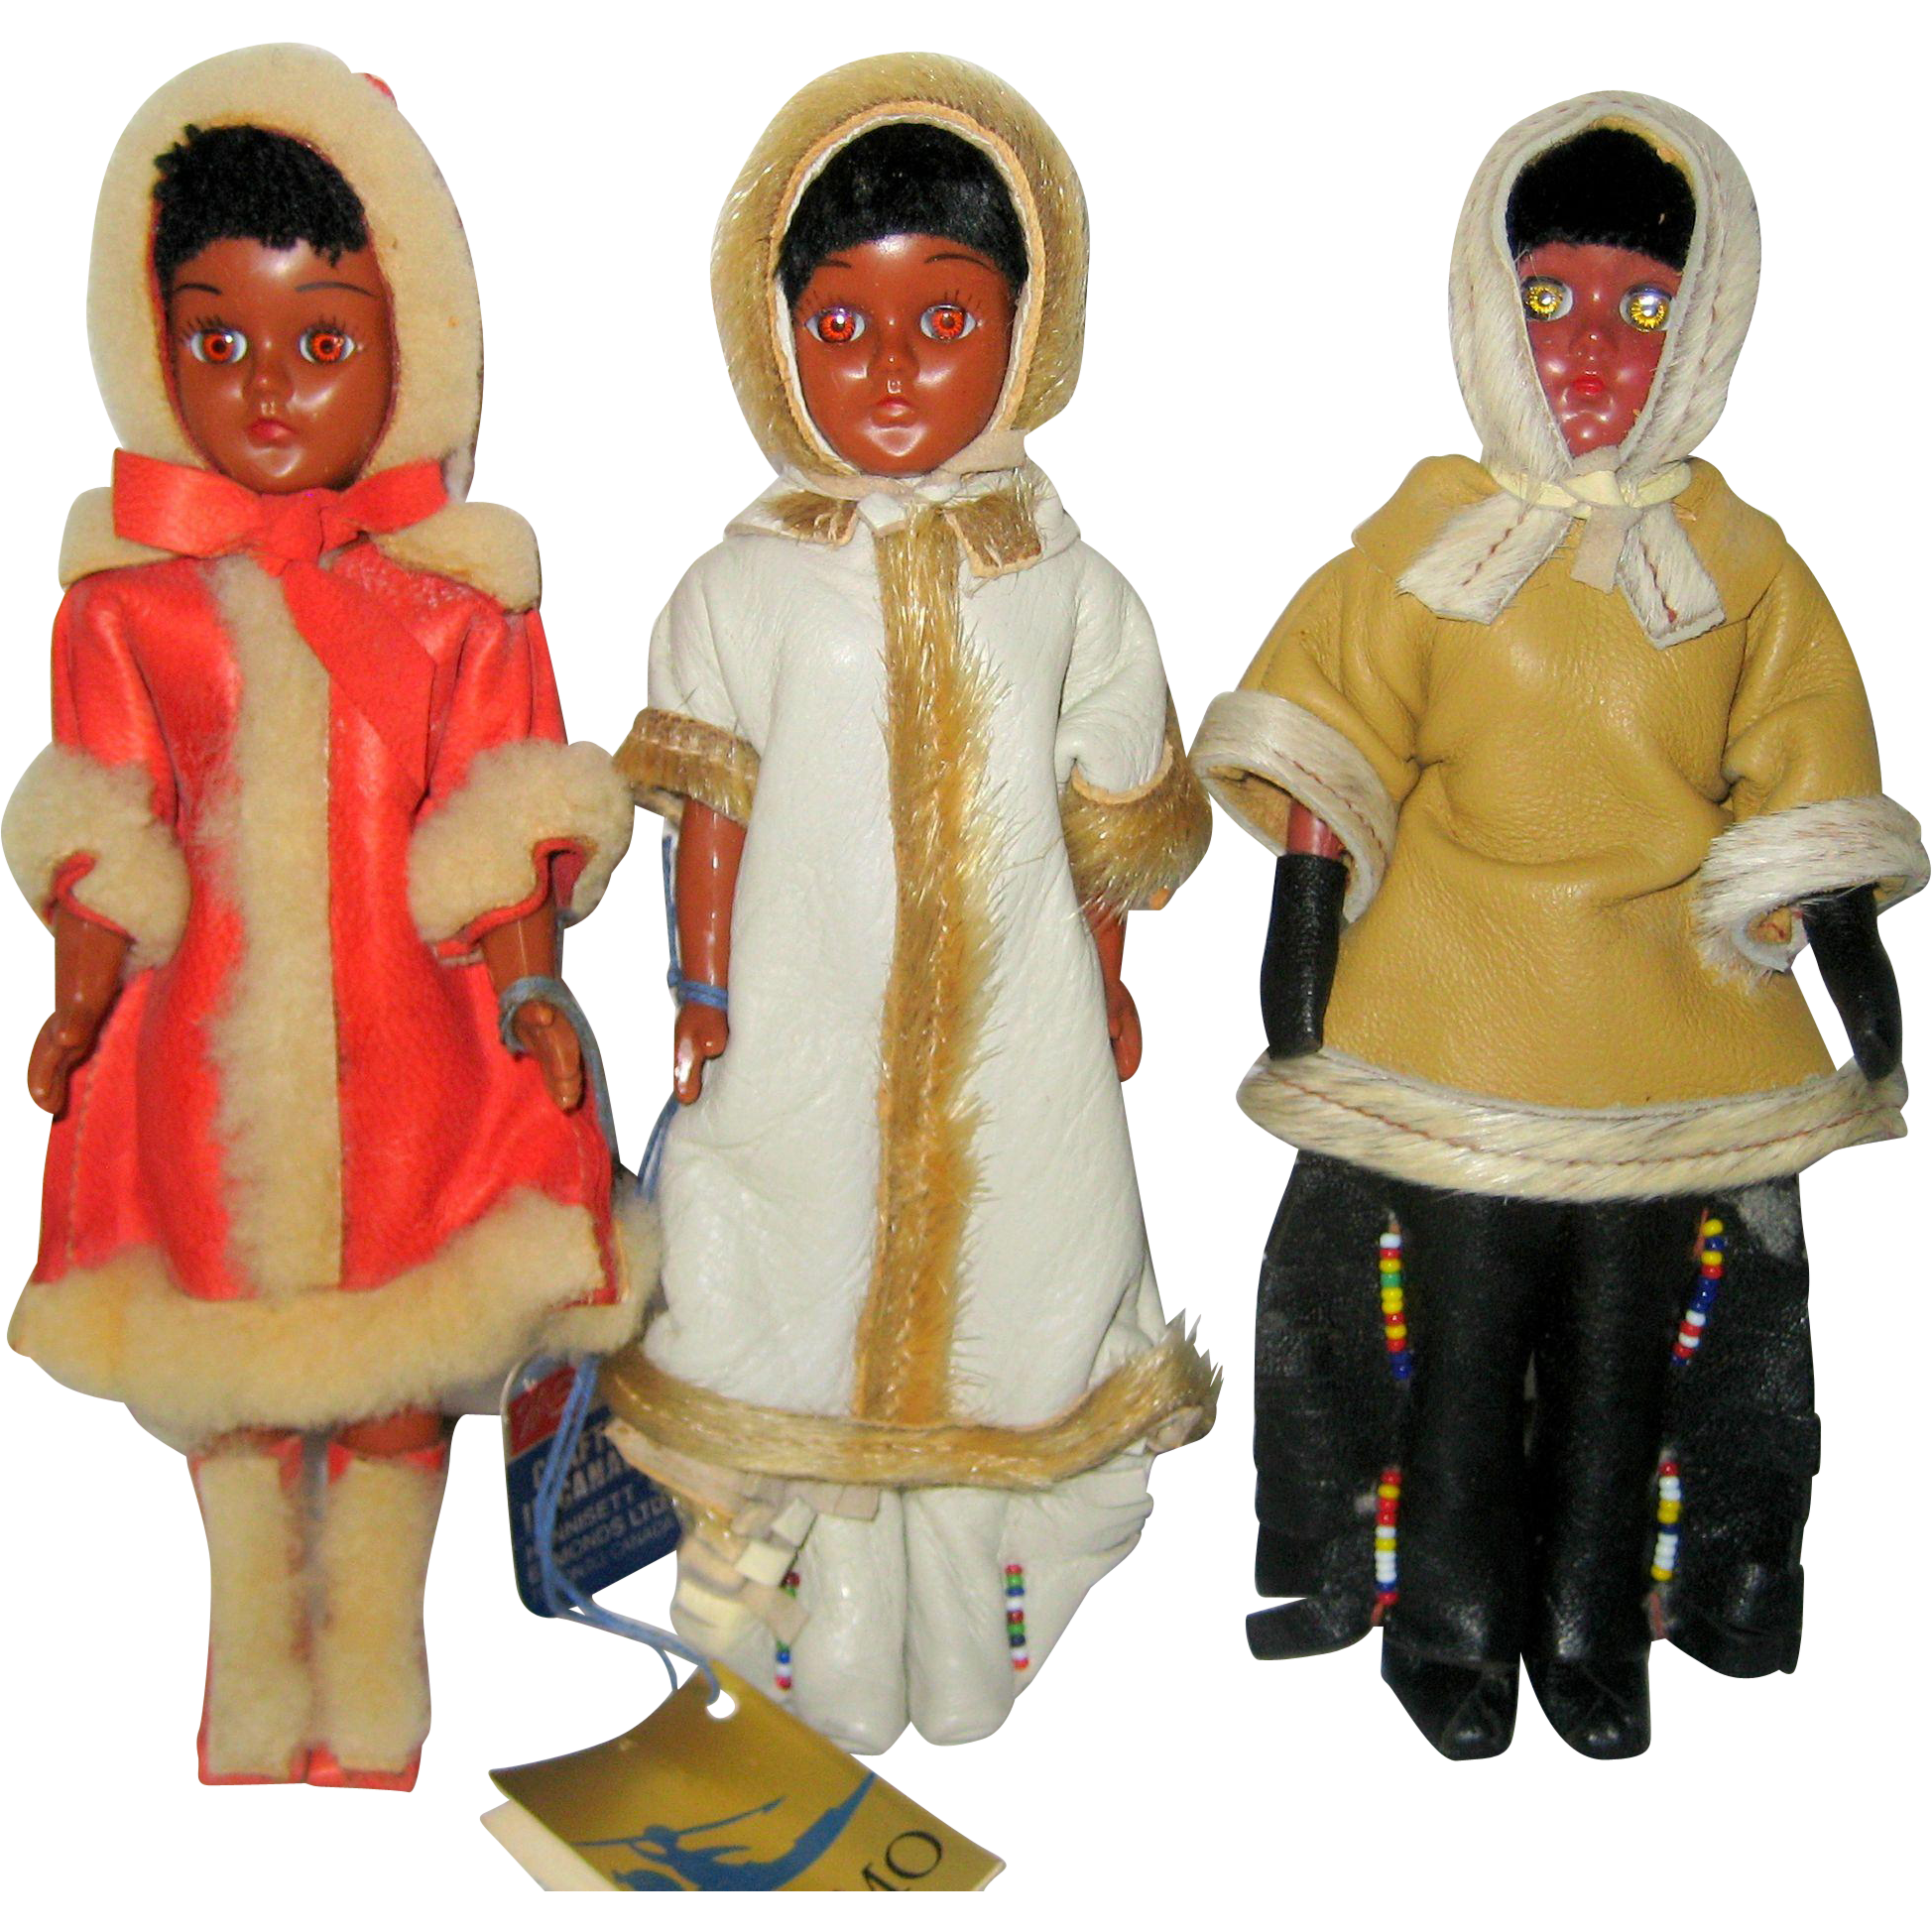 Vintage Canadian Native American Dolls with Leather Clothing and Fur Trim